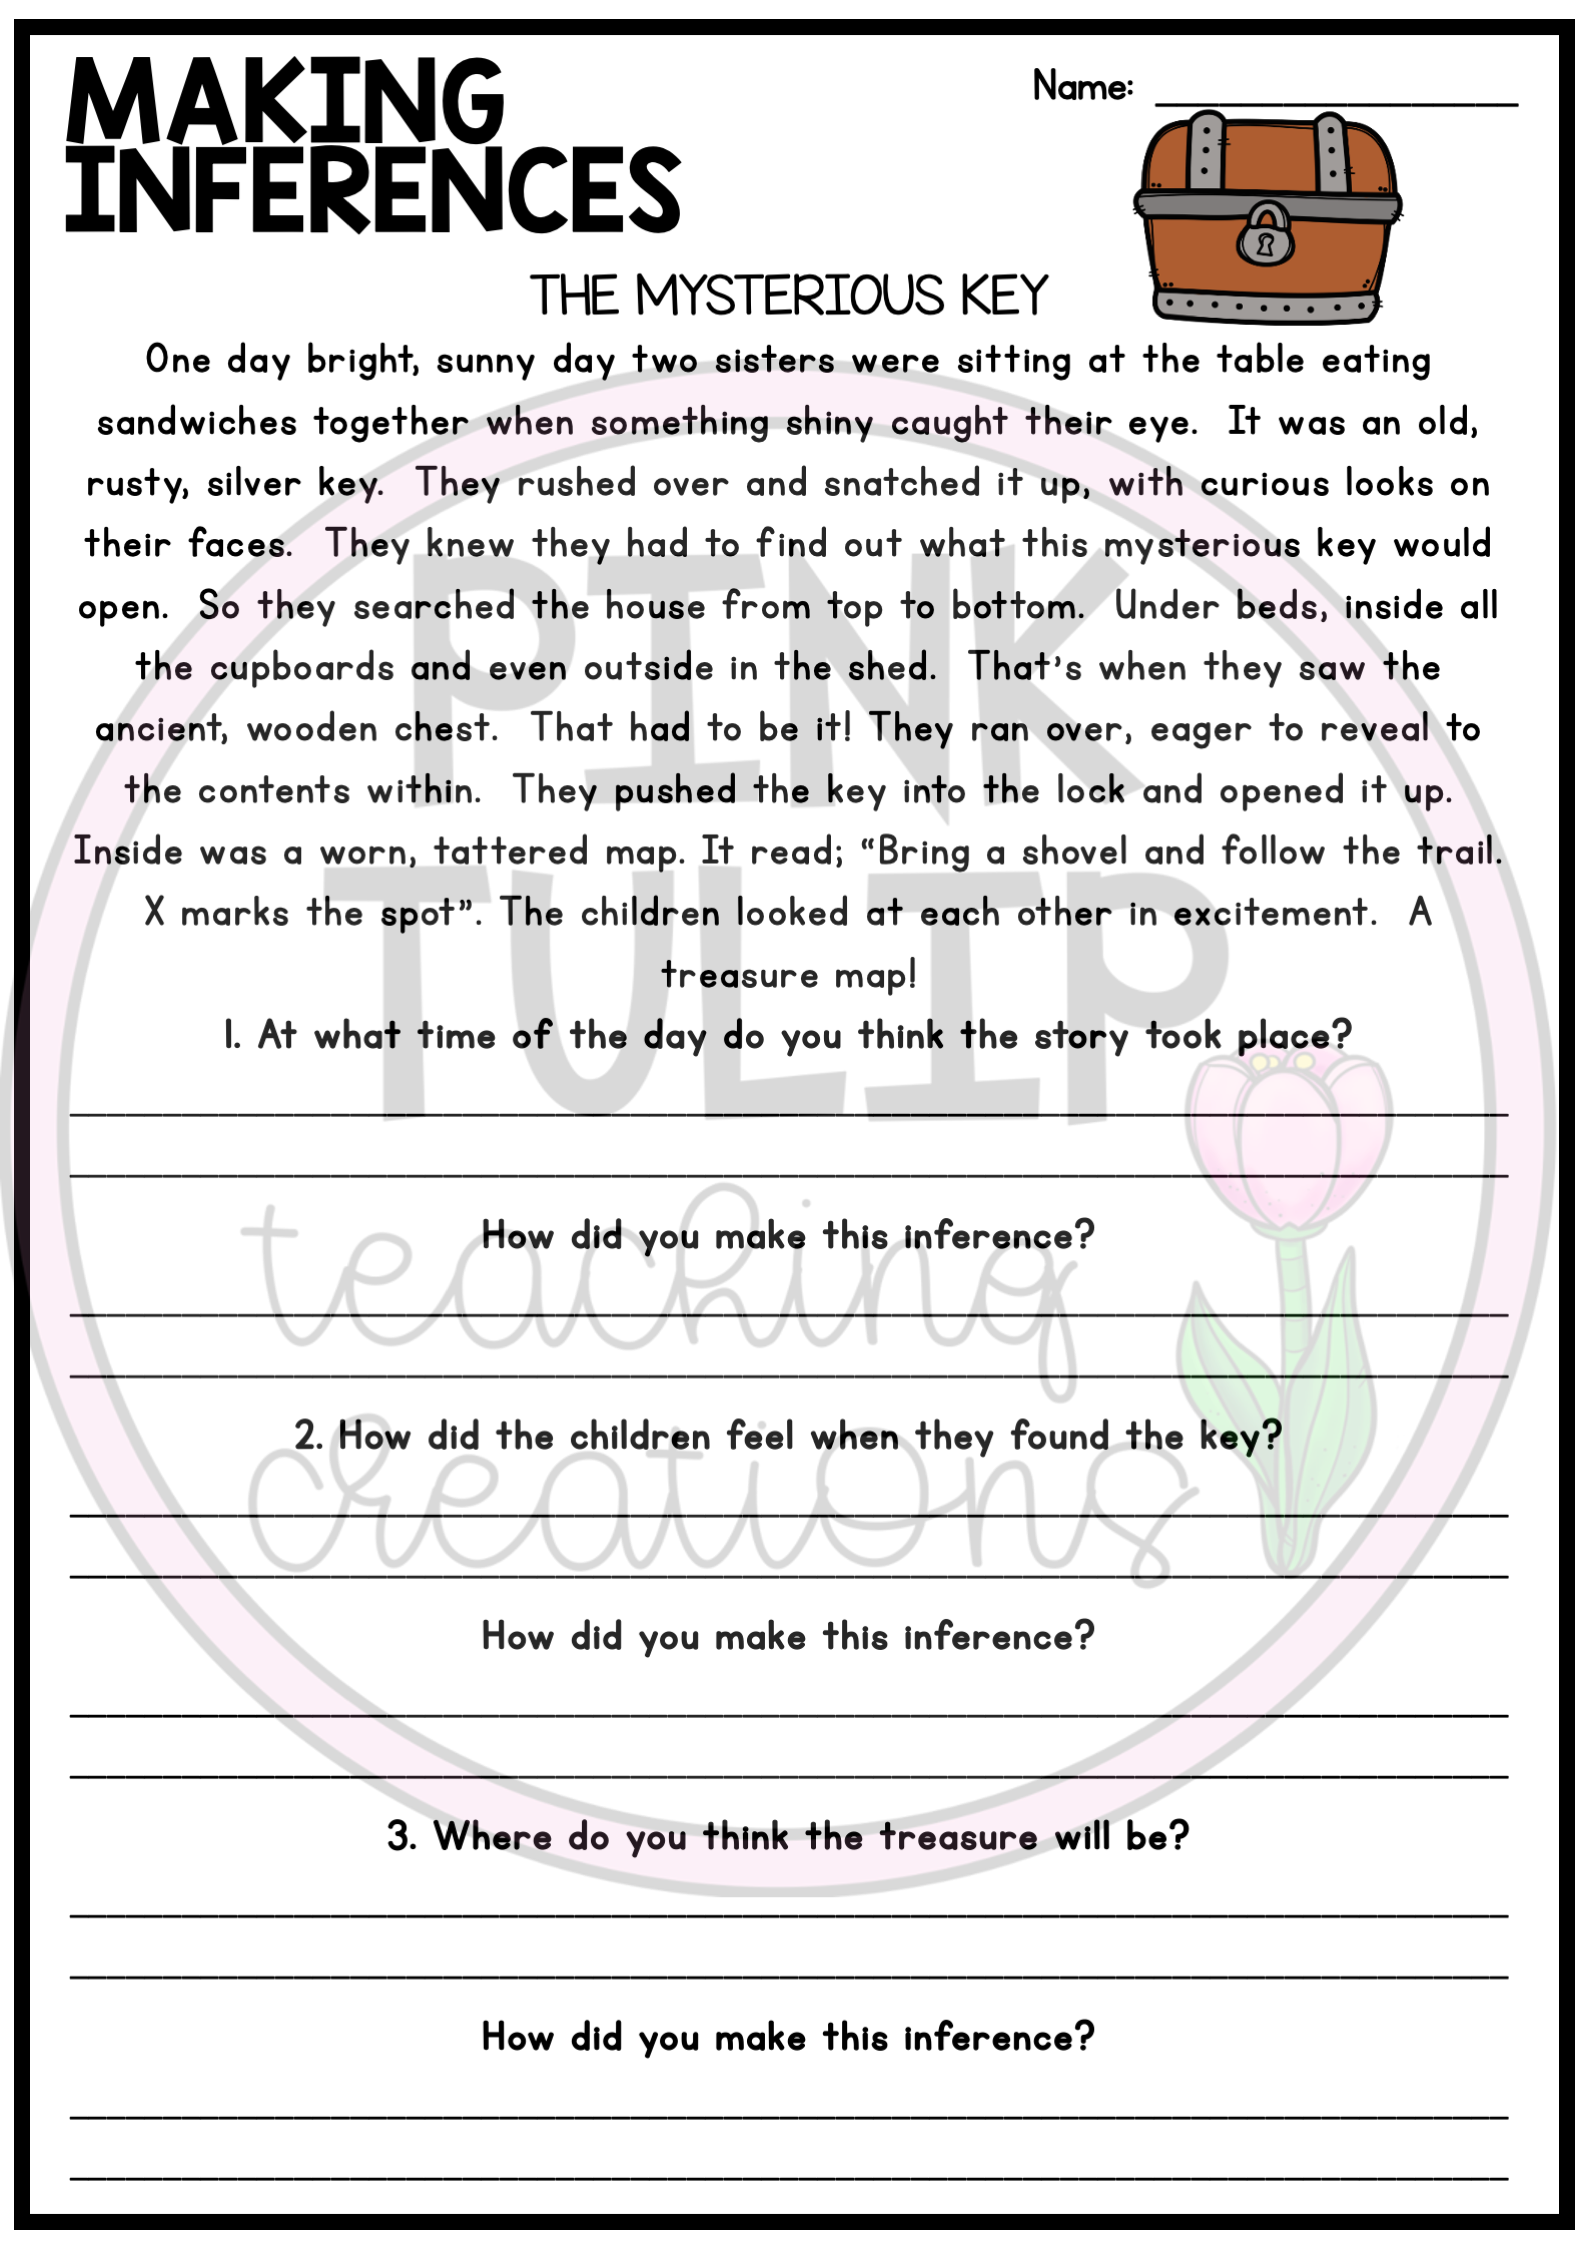 medium resolution of Making Inferences Worksheets 7th Grade   Printable Worksheets and  Activities for Teachers